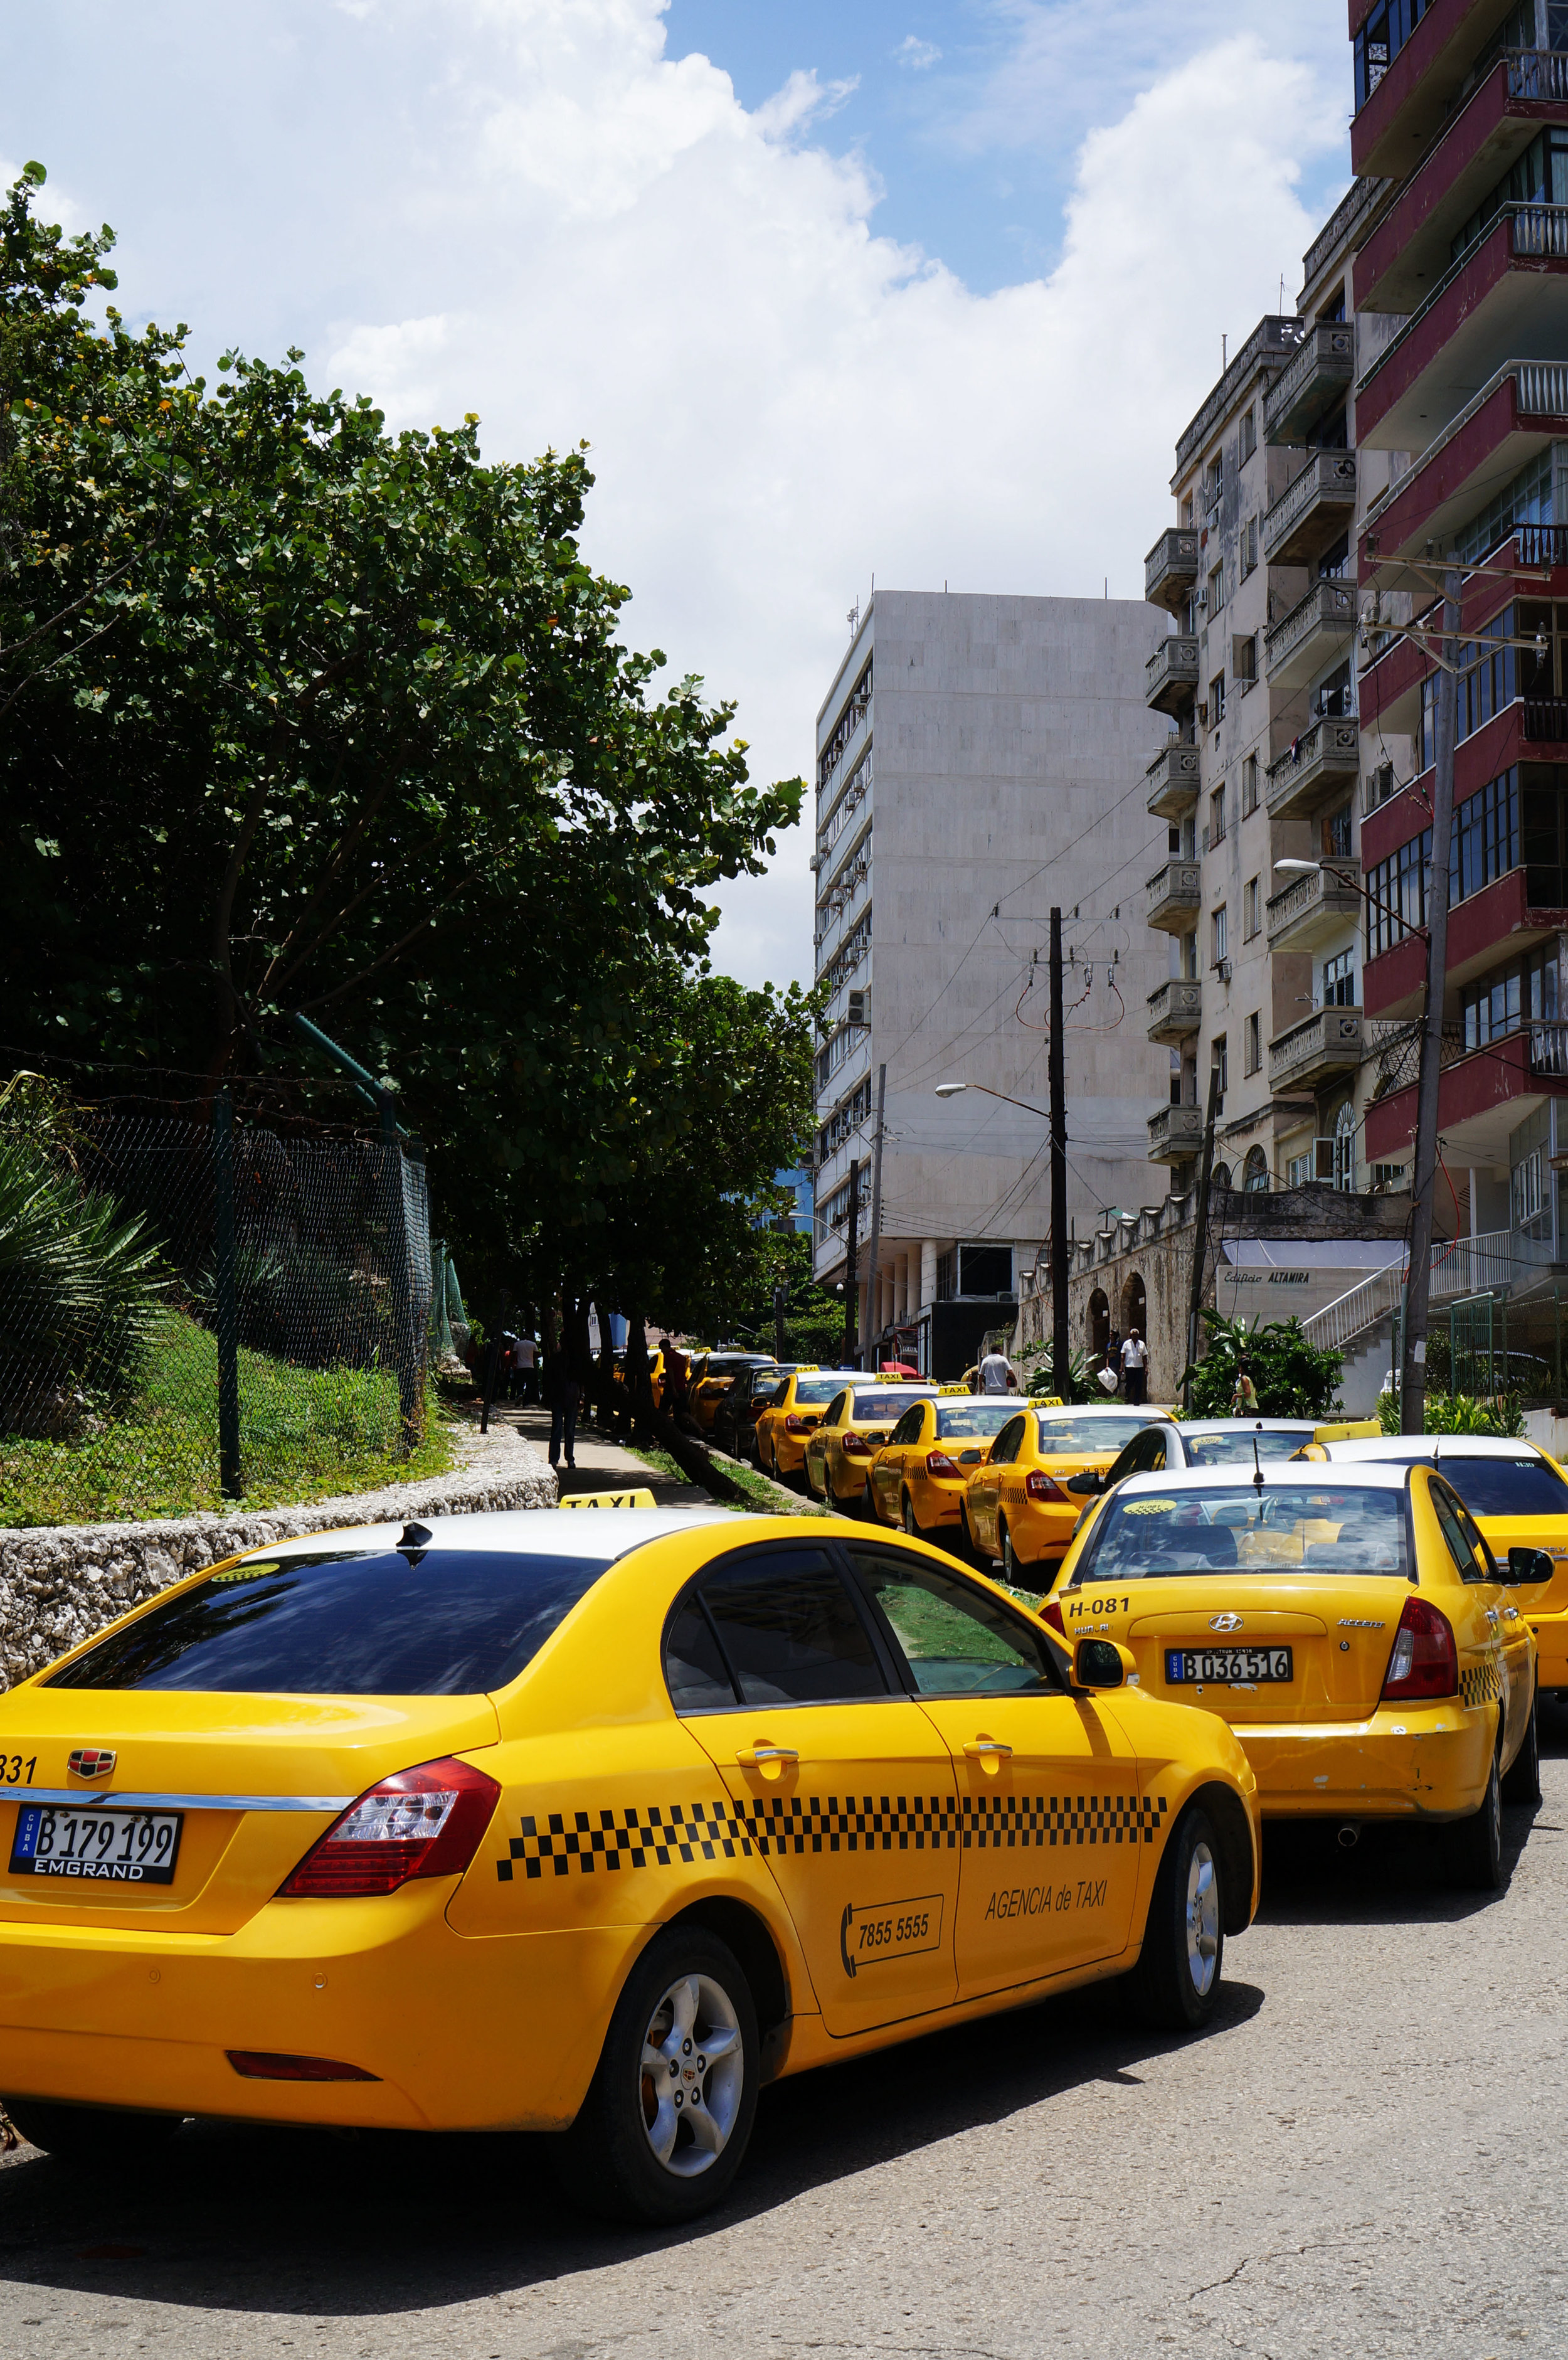 Taxis waiting for tourists just beyond view.